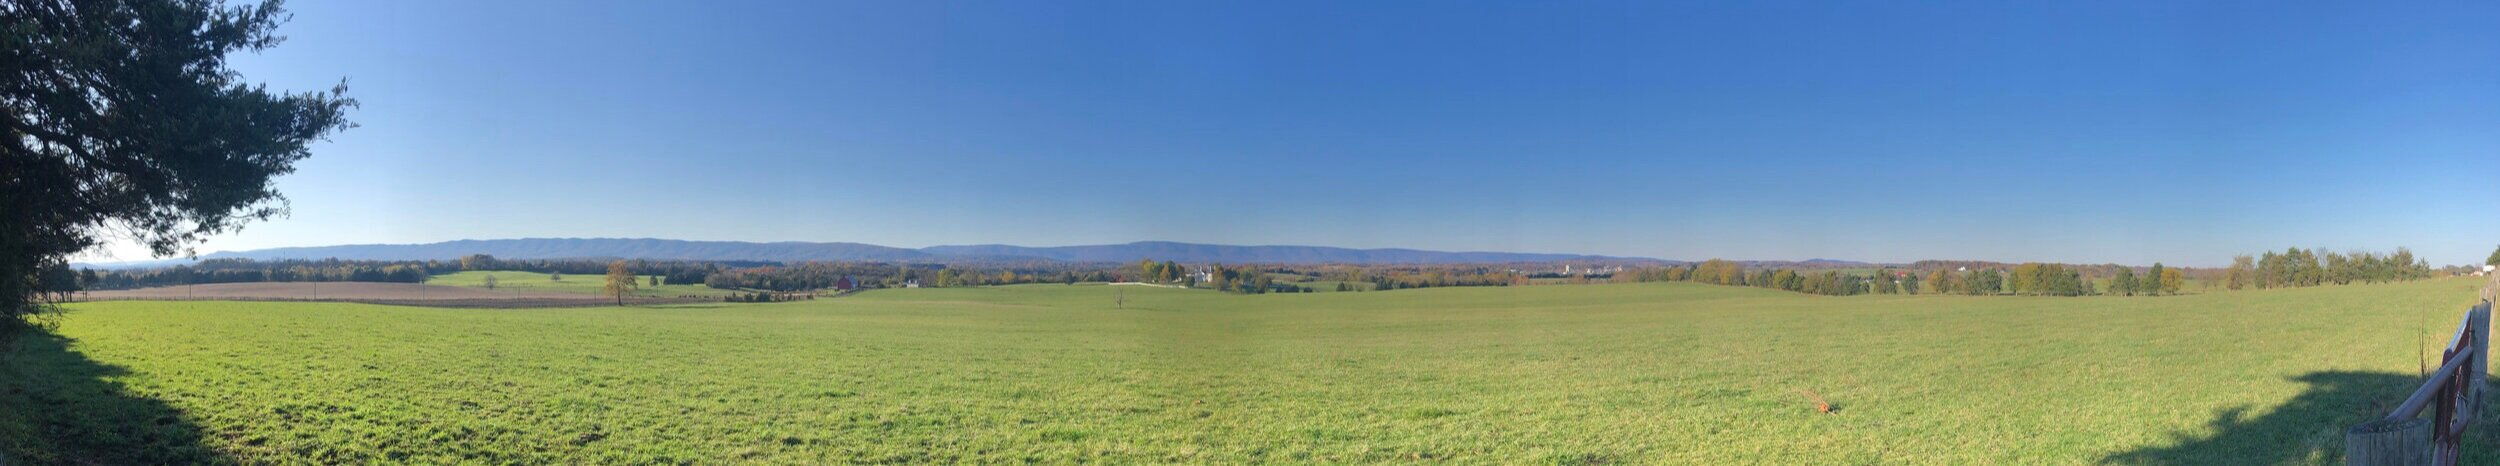 This is my last view of the Allegheny Mountains to the west of the Shenandoah Valley. The top of the ridge delineates Virginia and West Virginia.